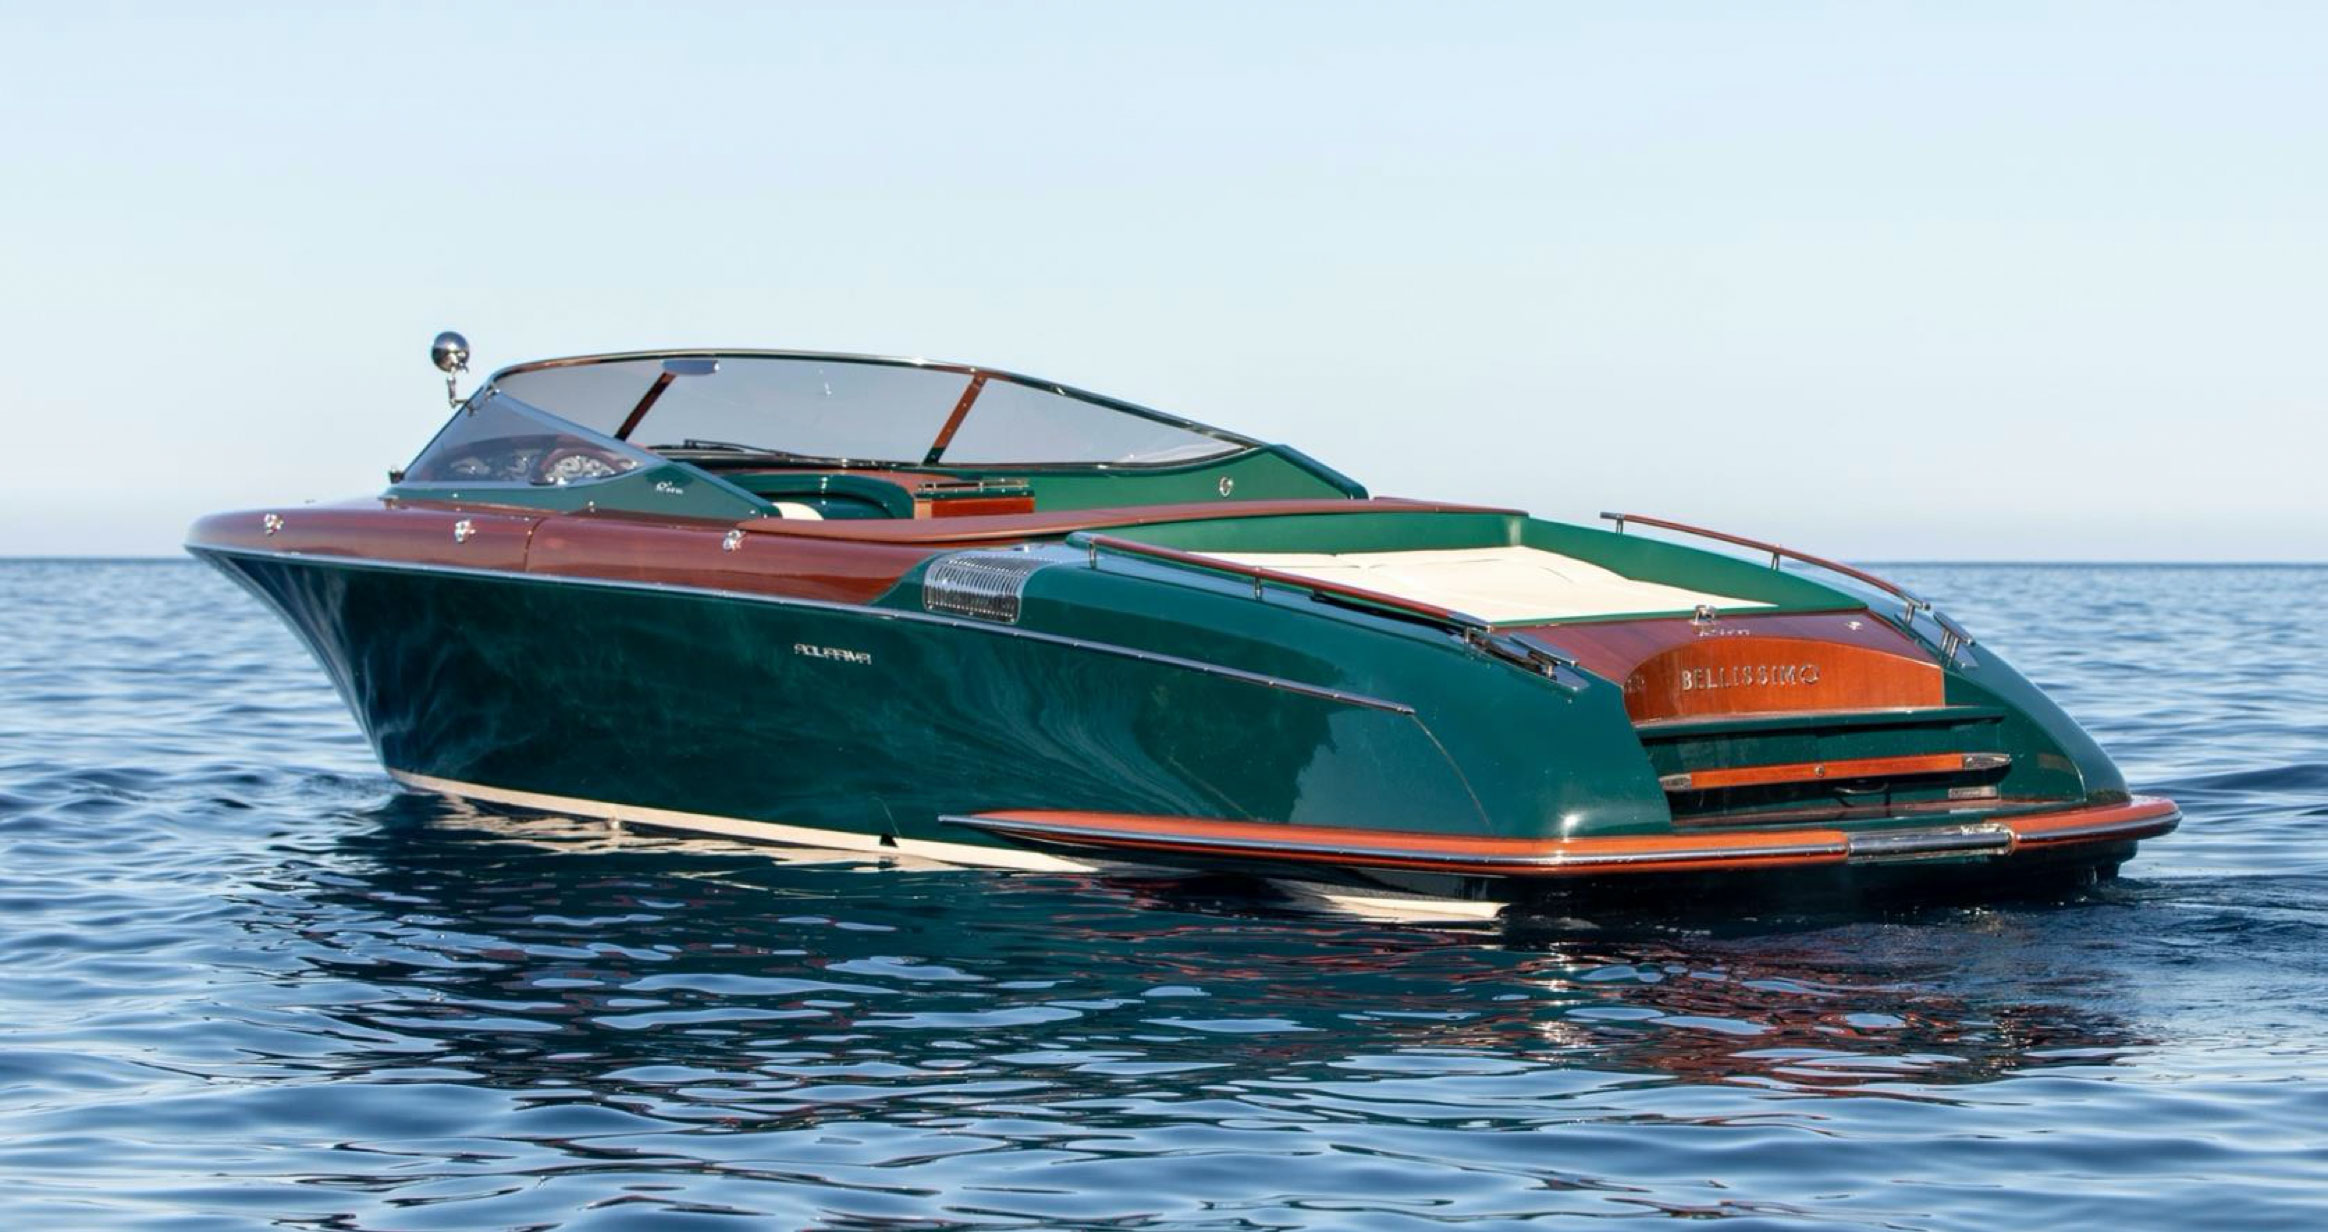 Riva Aquariva for sale classic